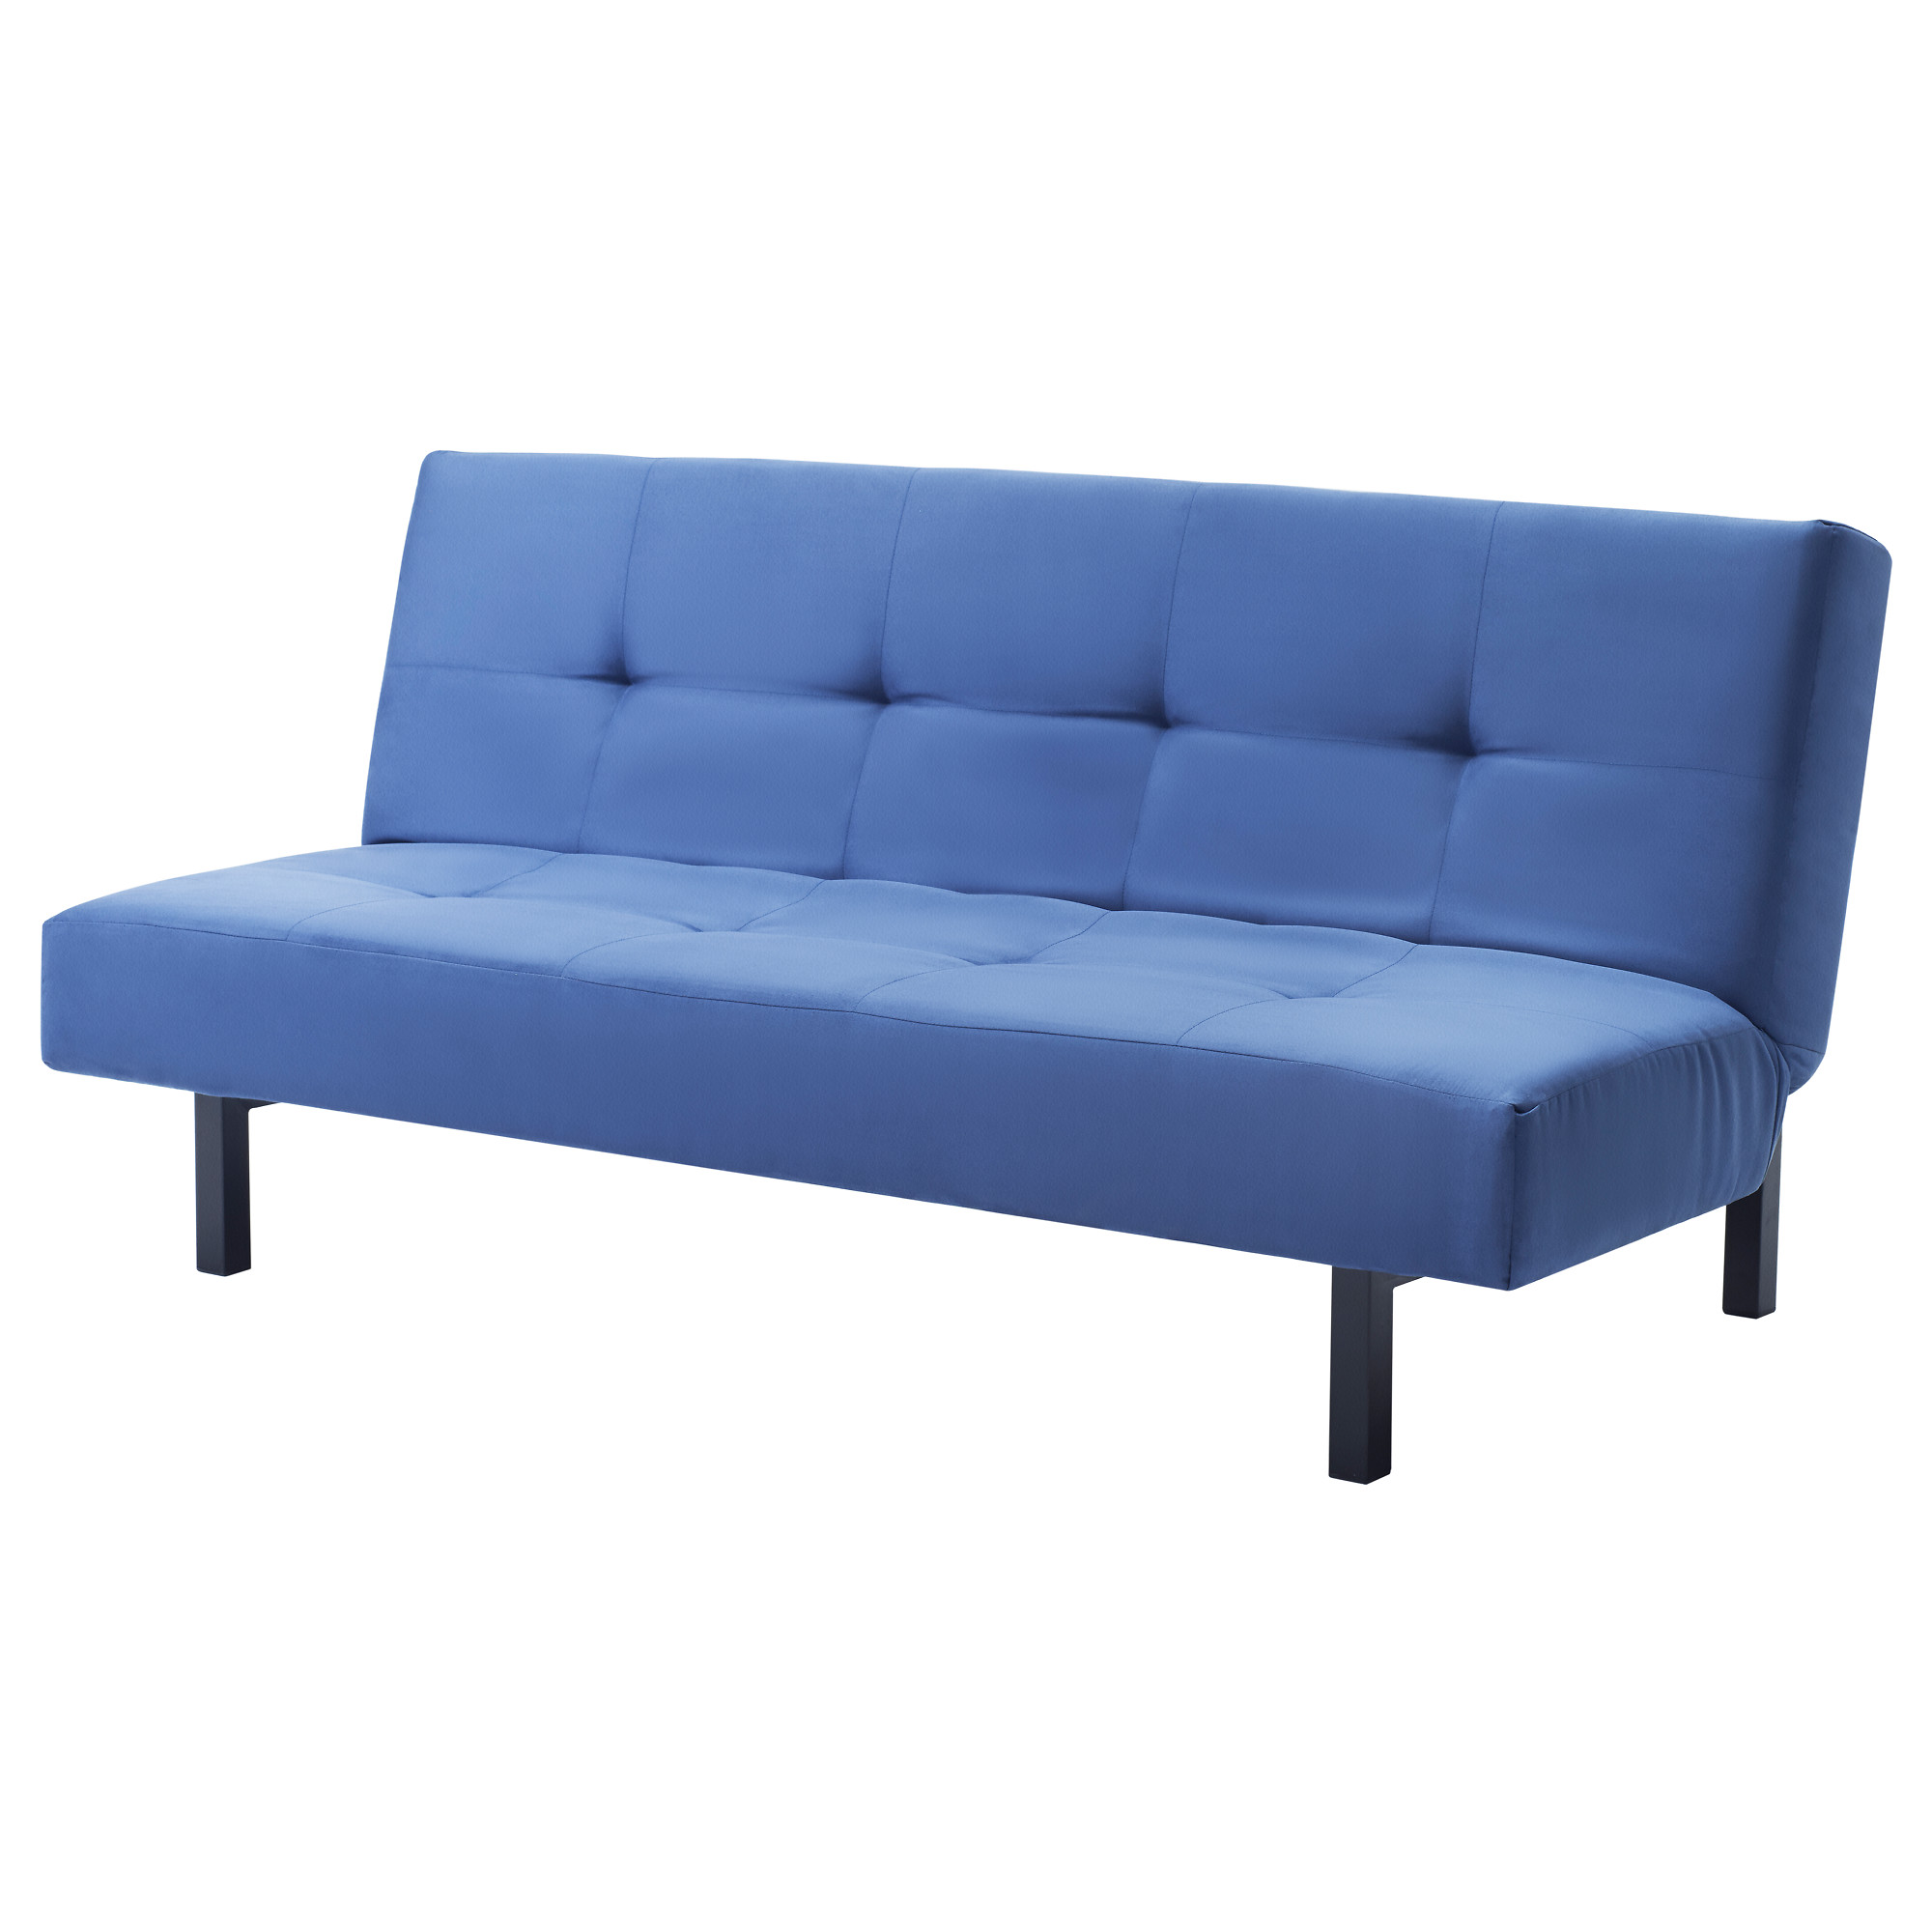 Best sofa sleepers ikea homesfeed Bed divan